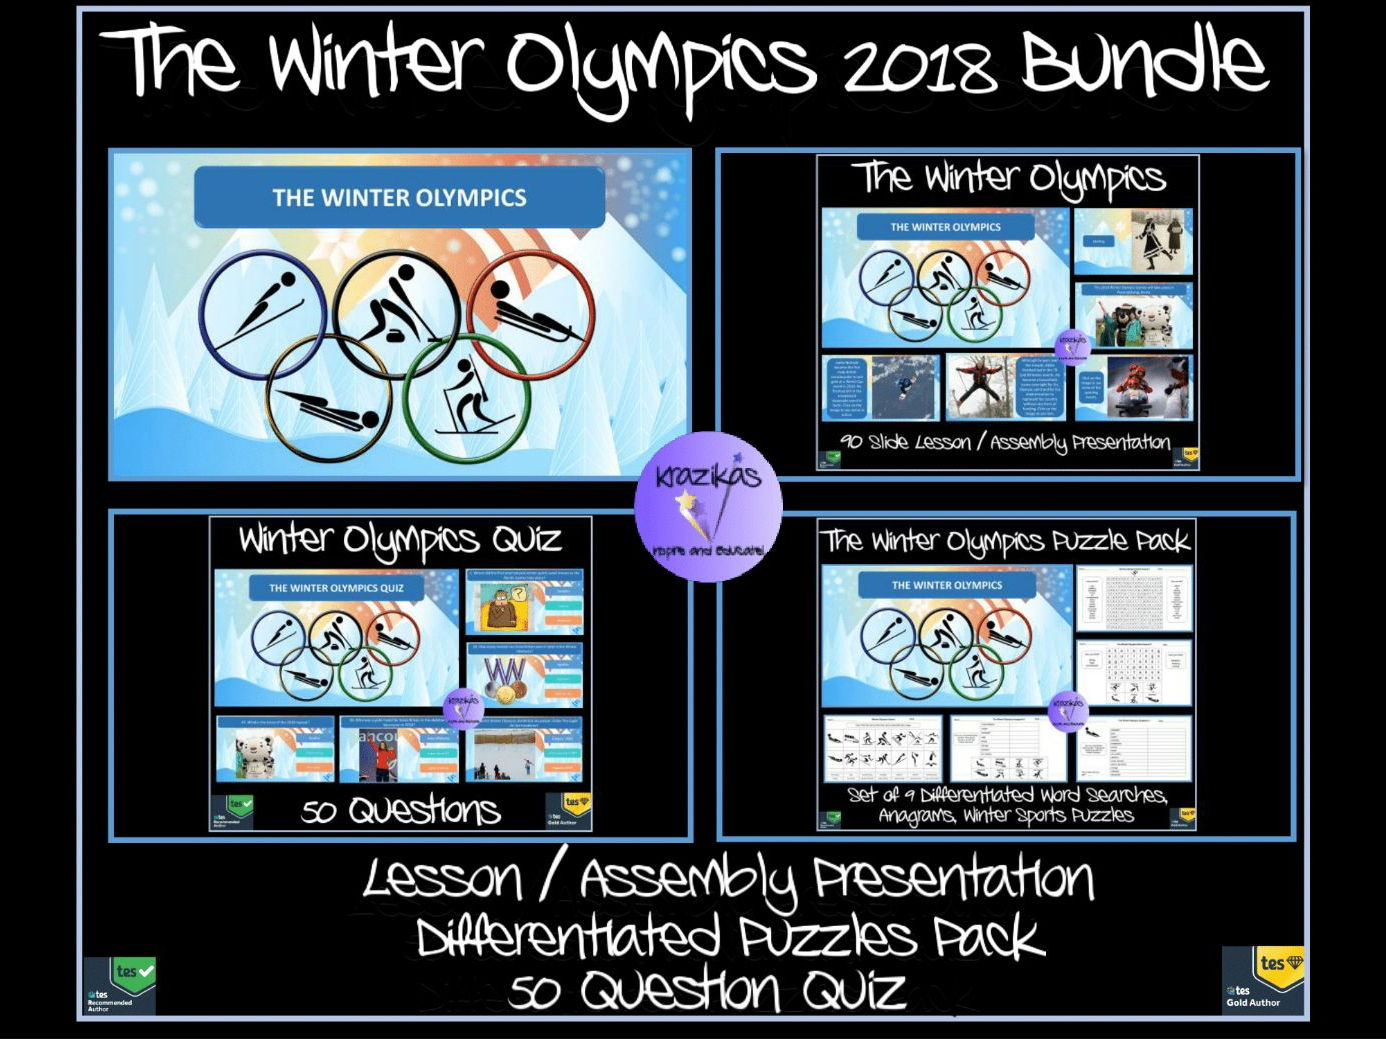 The Winter Olympics 2018 Bundle - Presentation, 50 Question Quiz, Puzzle Pack / Paralympics